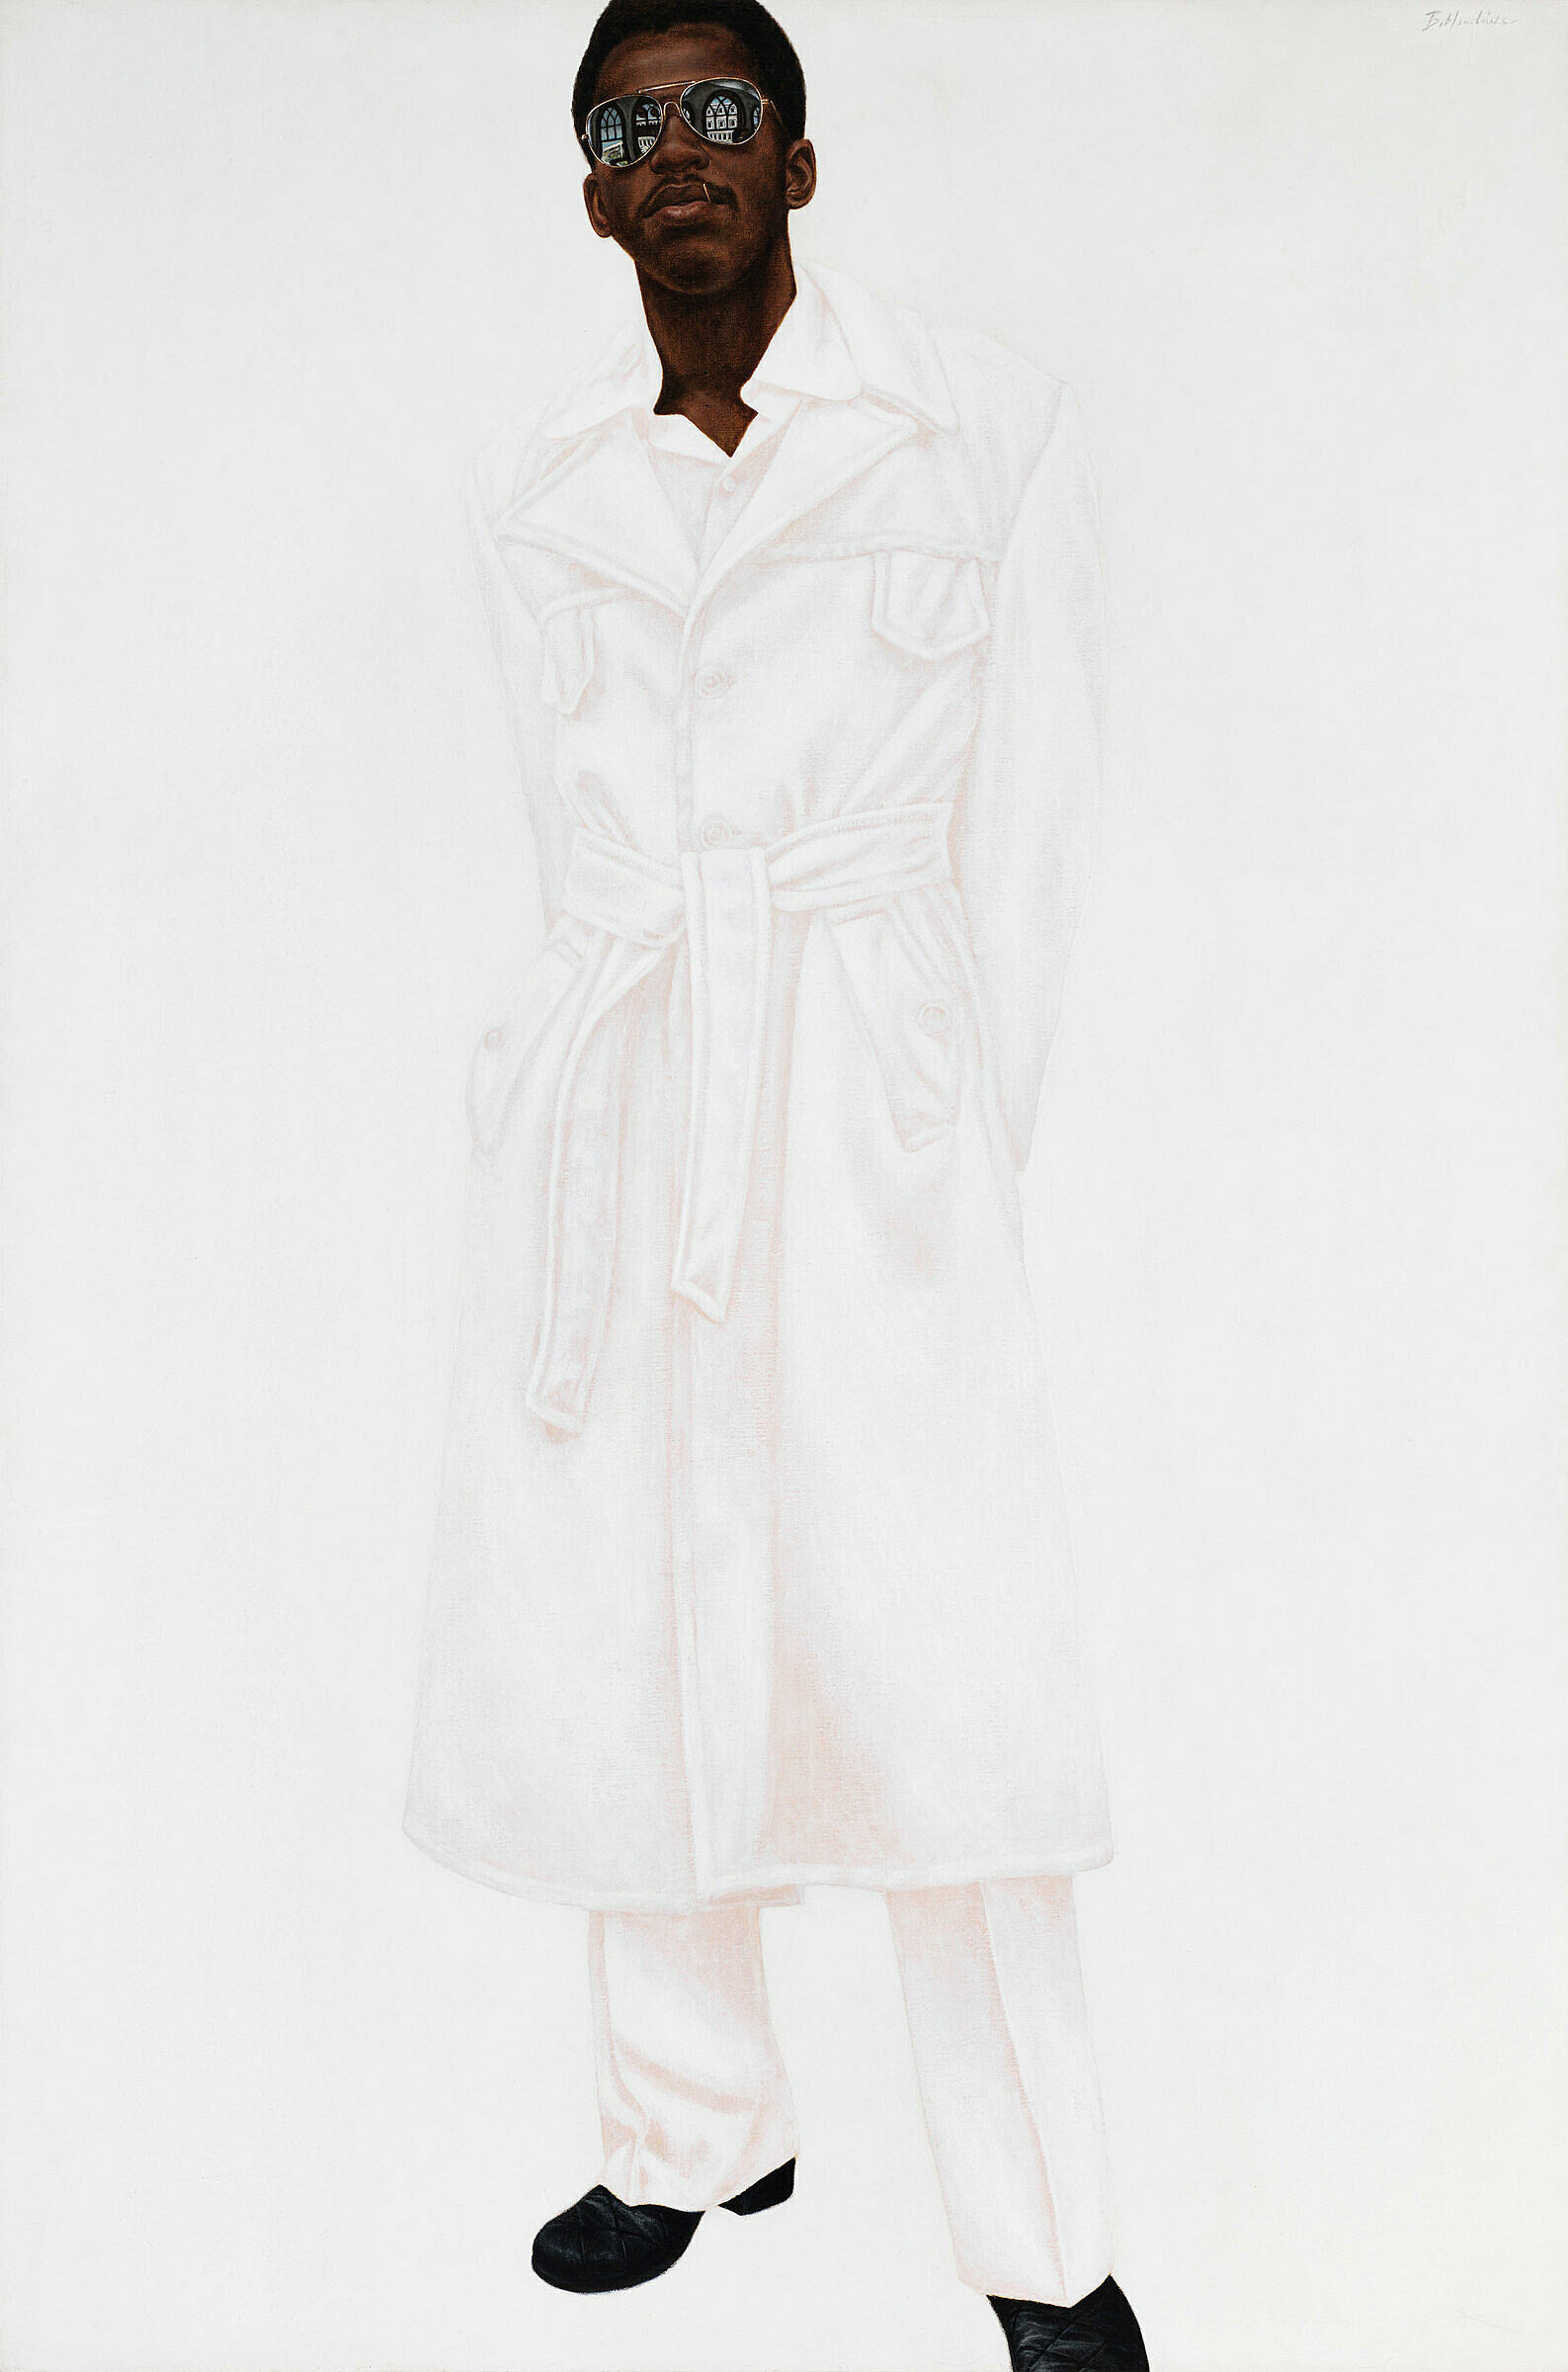 A work by Barkley Hendricks. The figure of a man stands wearing sunglasses and a white suit on a white ground.